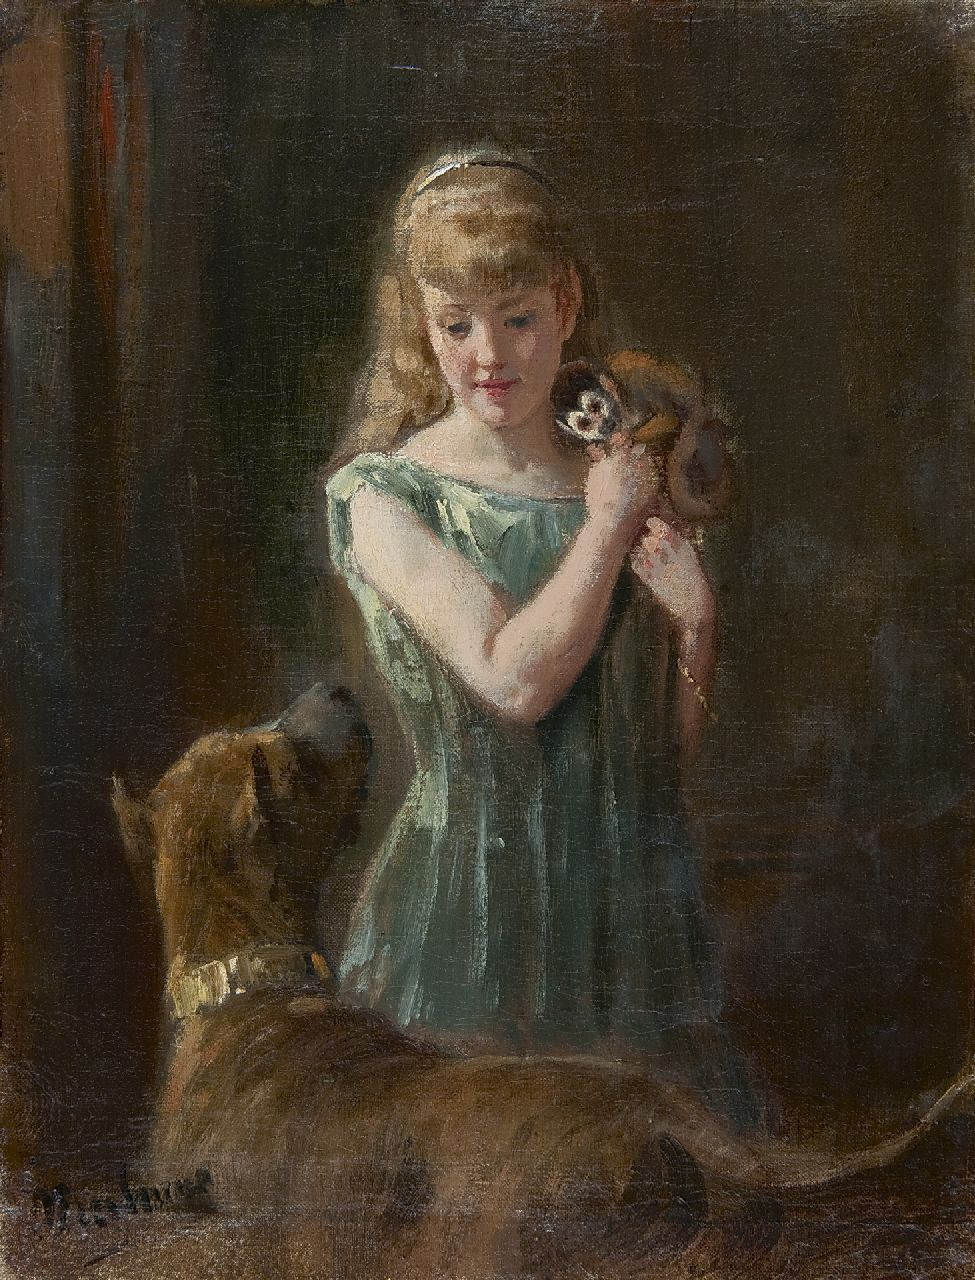 Eerelman O.  | Otto Eerelman, Girl with monkey and dog, oil on canvas 32.1 x 24.6 cm, signed l.l.